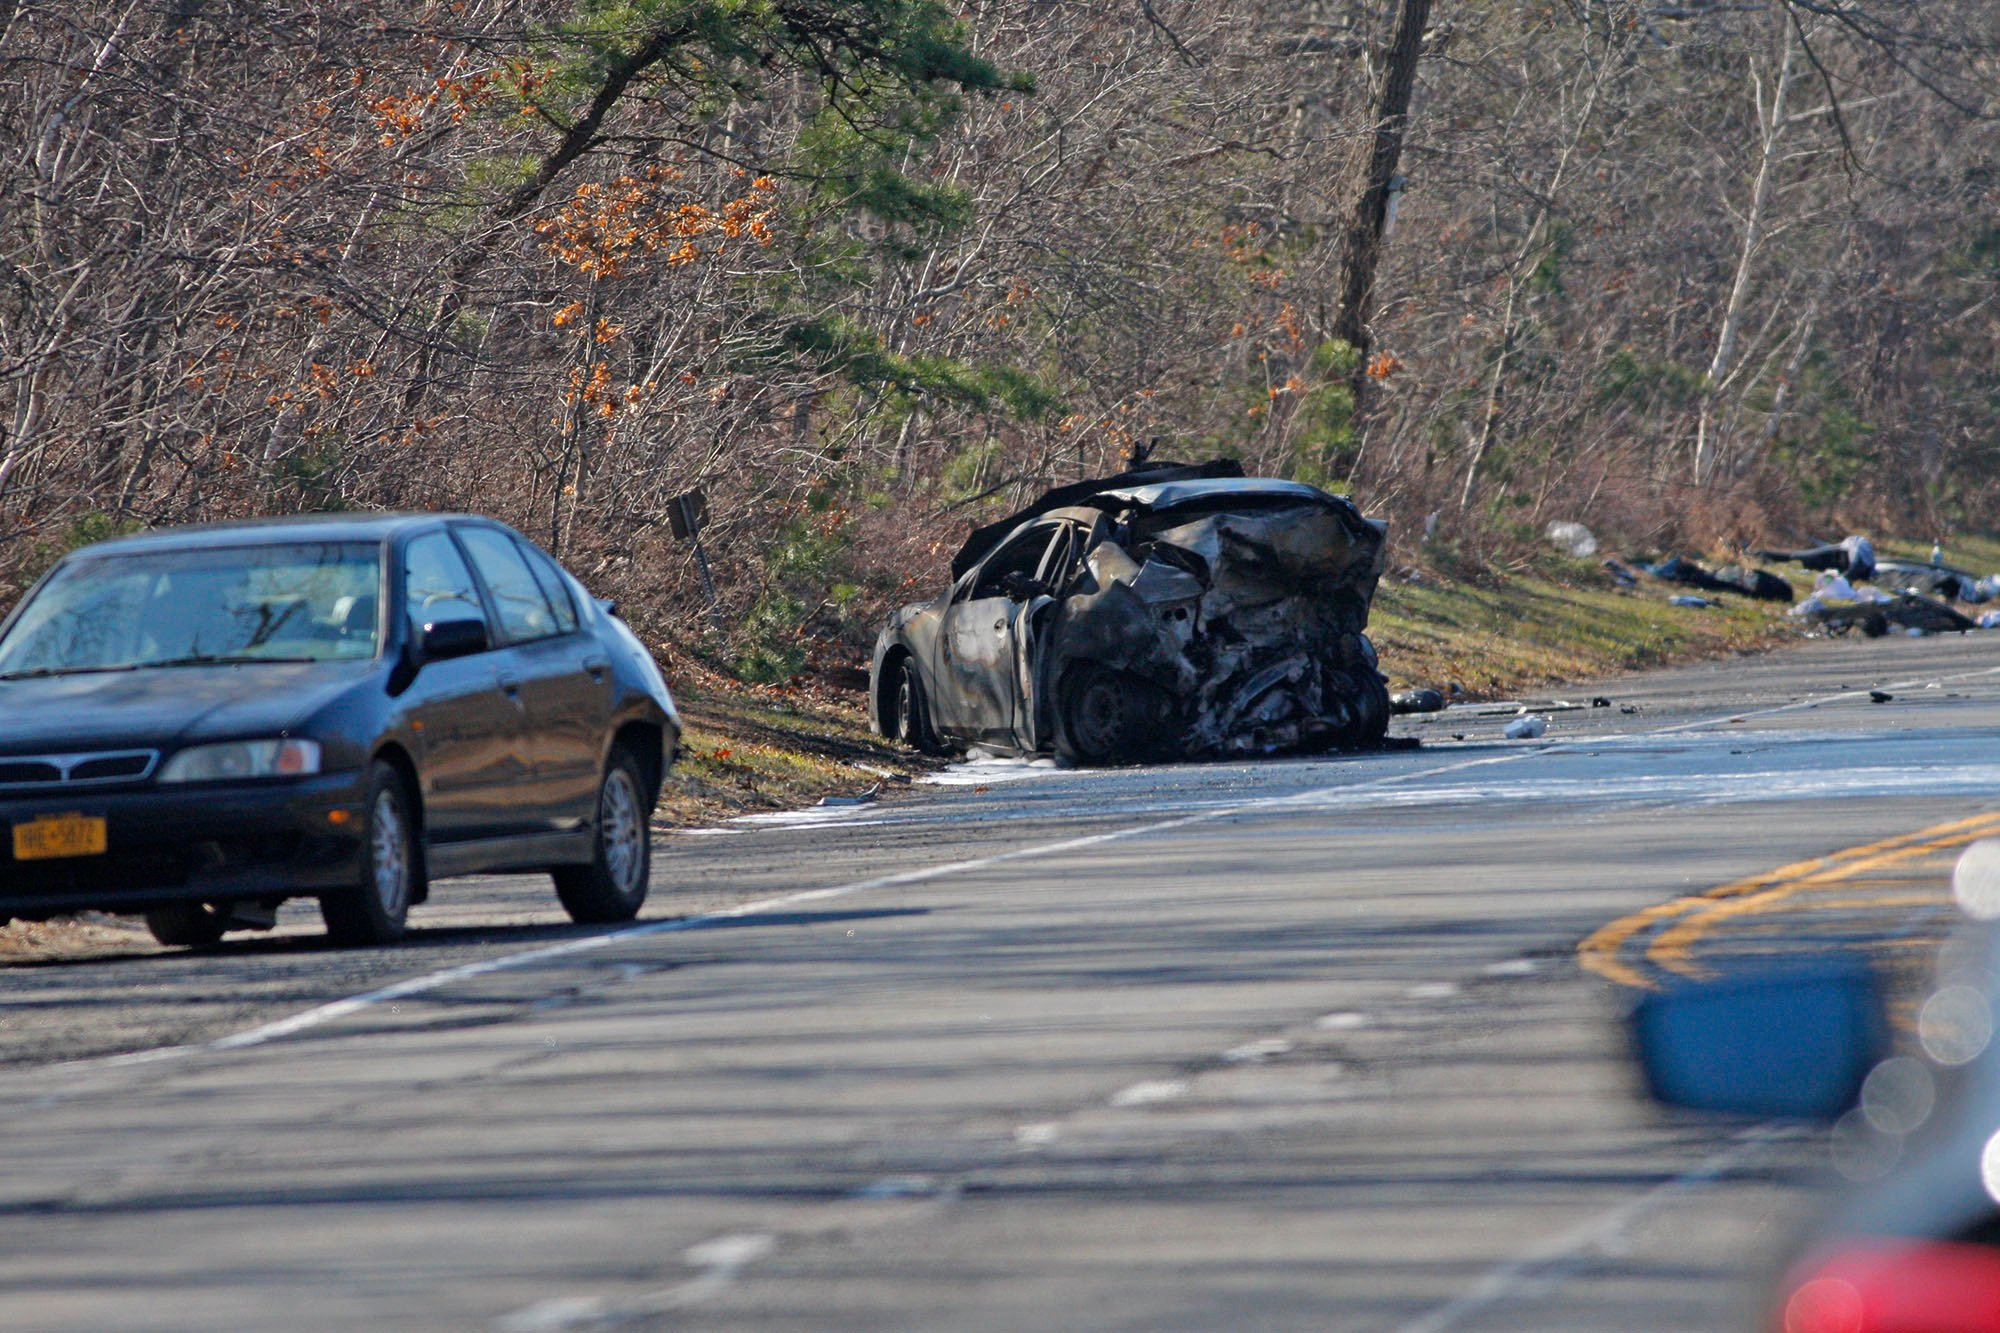 Several killed in fiery Long Island wreck that involved